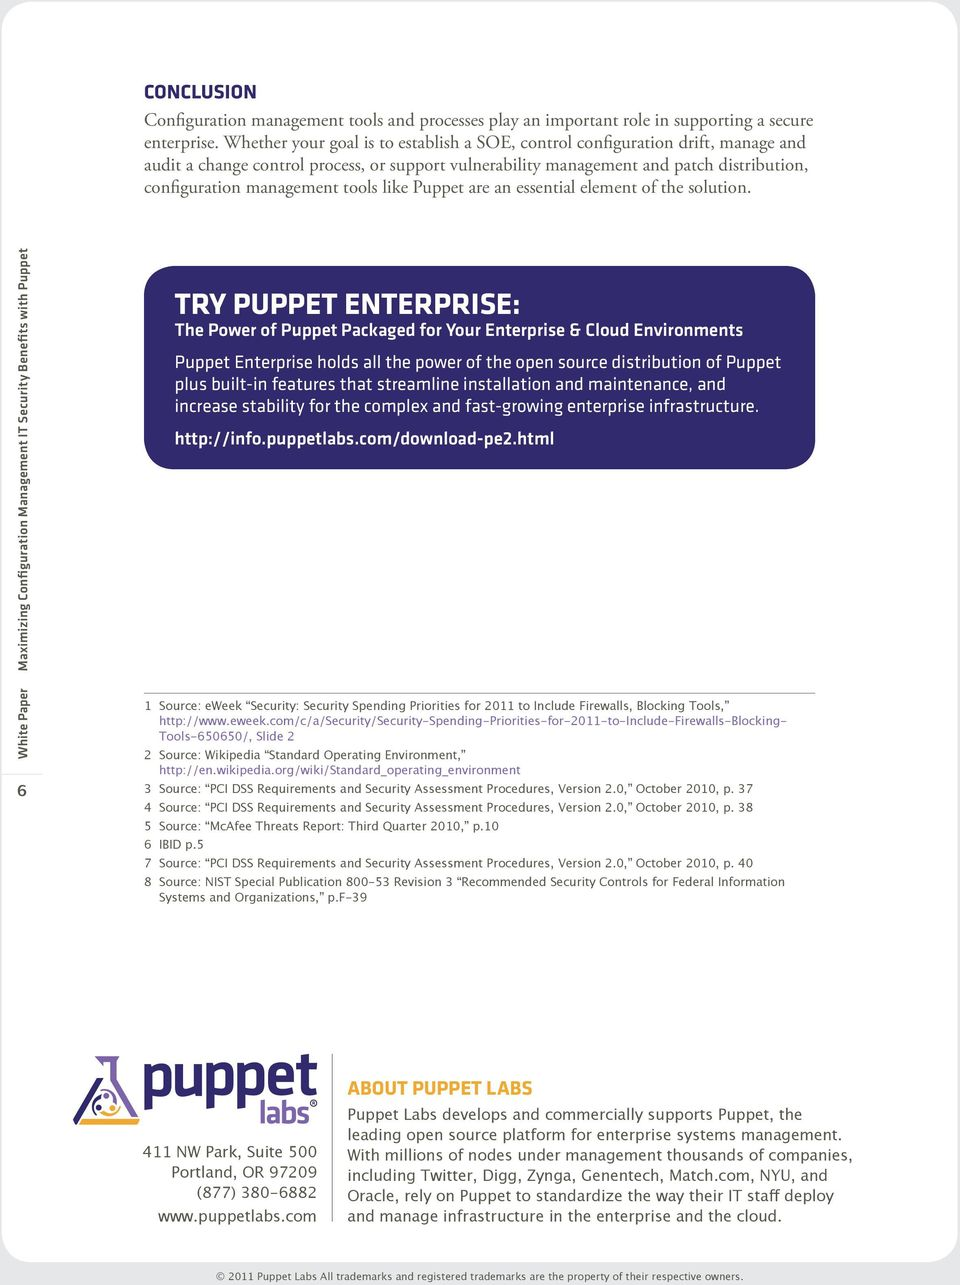 tools like Puppet are an essential element of the solution.